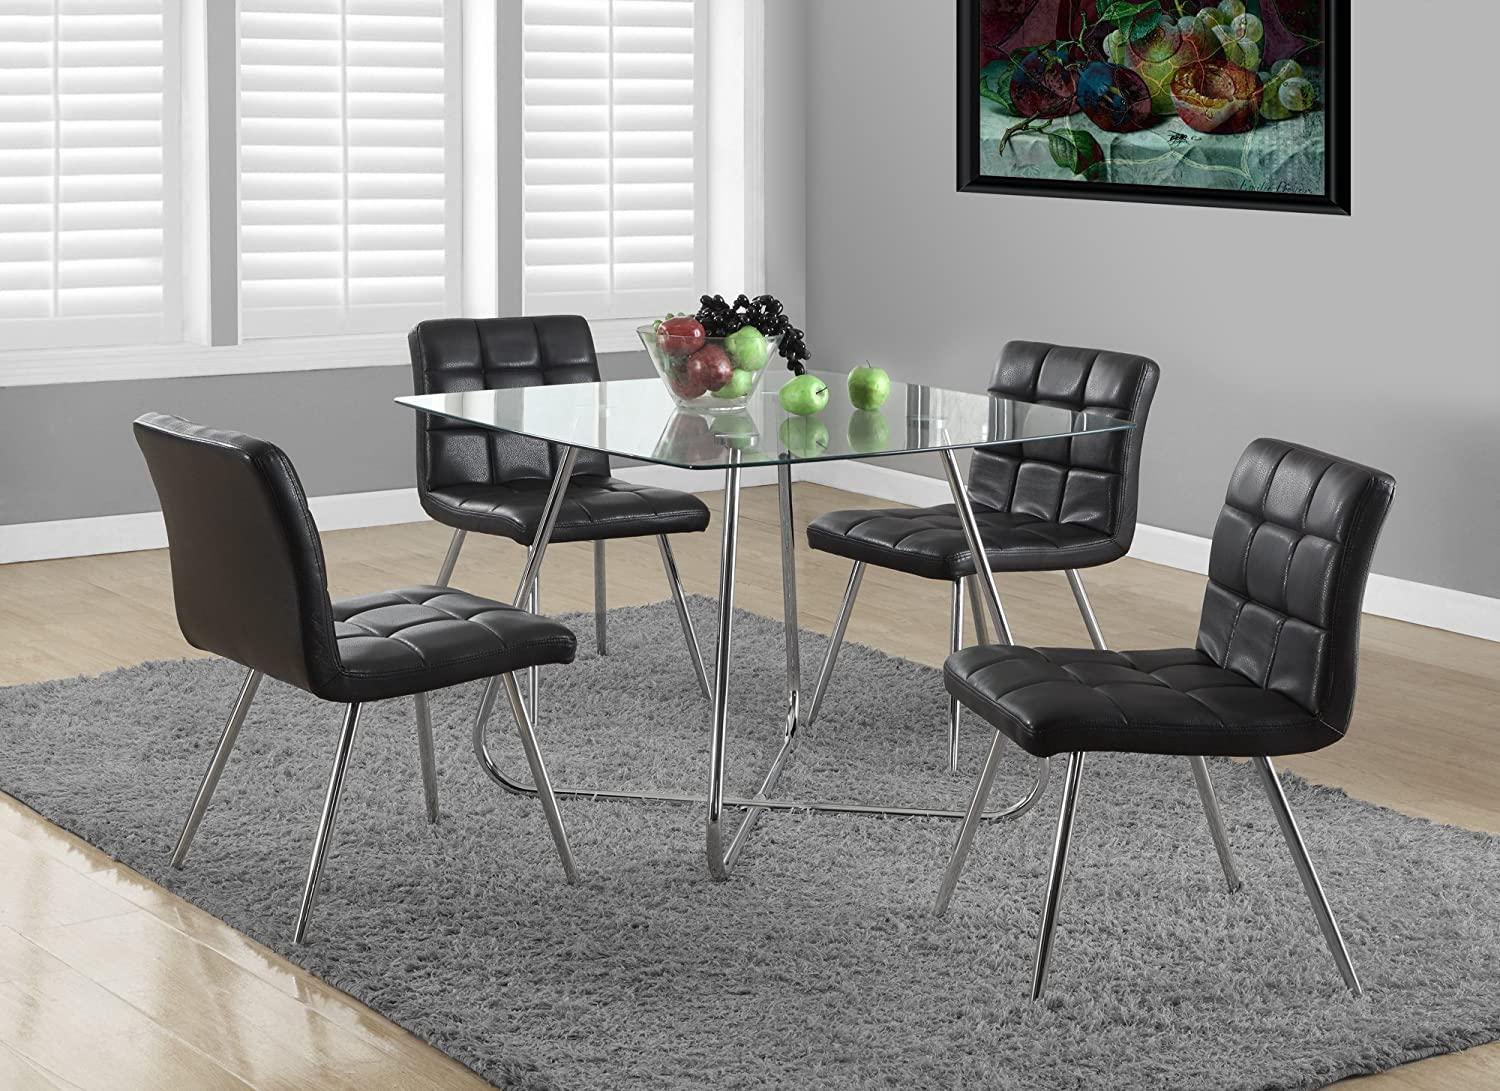 Buy Dining Tables set of dining room chairs Home Decorating Ideas